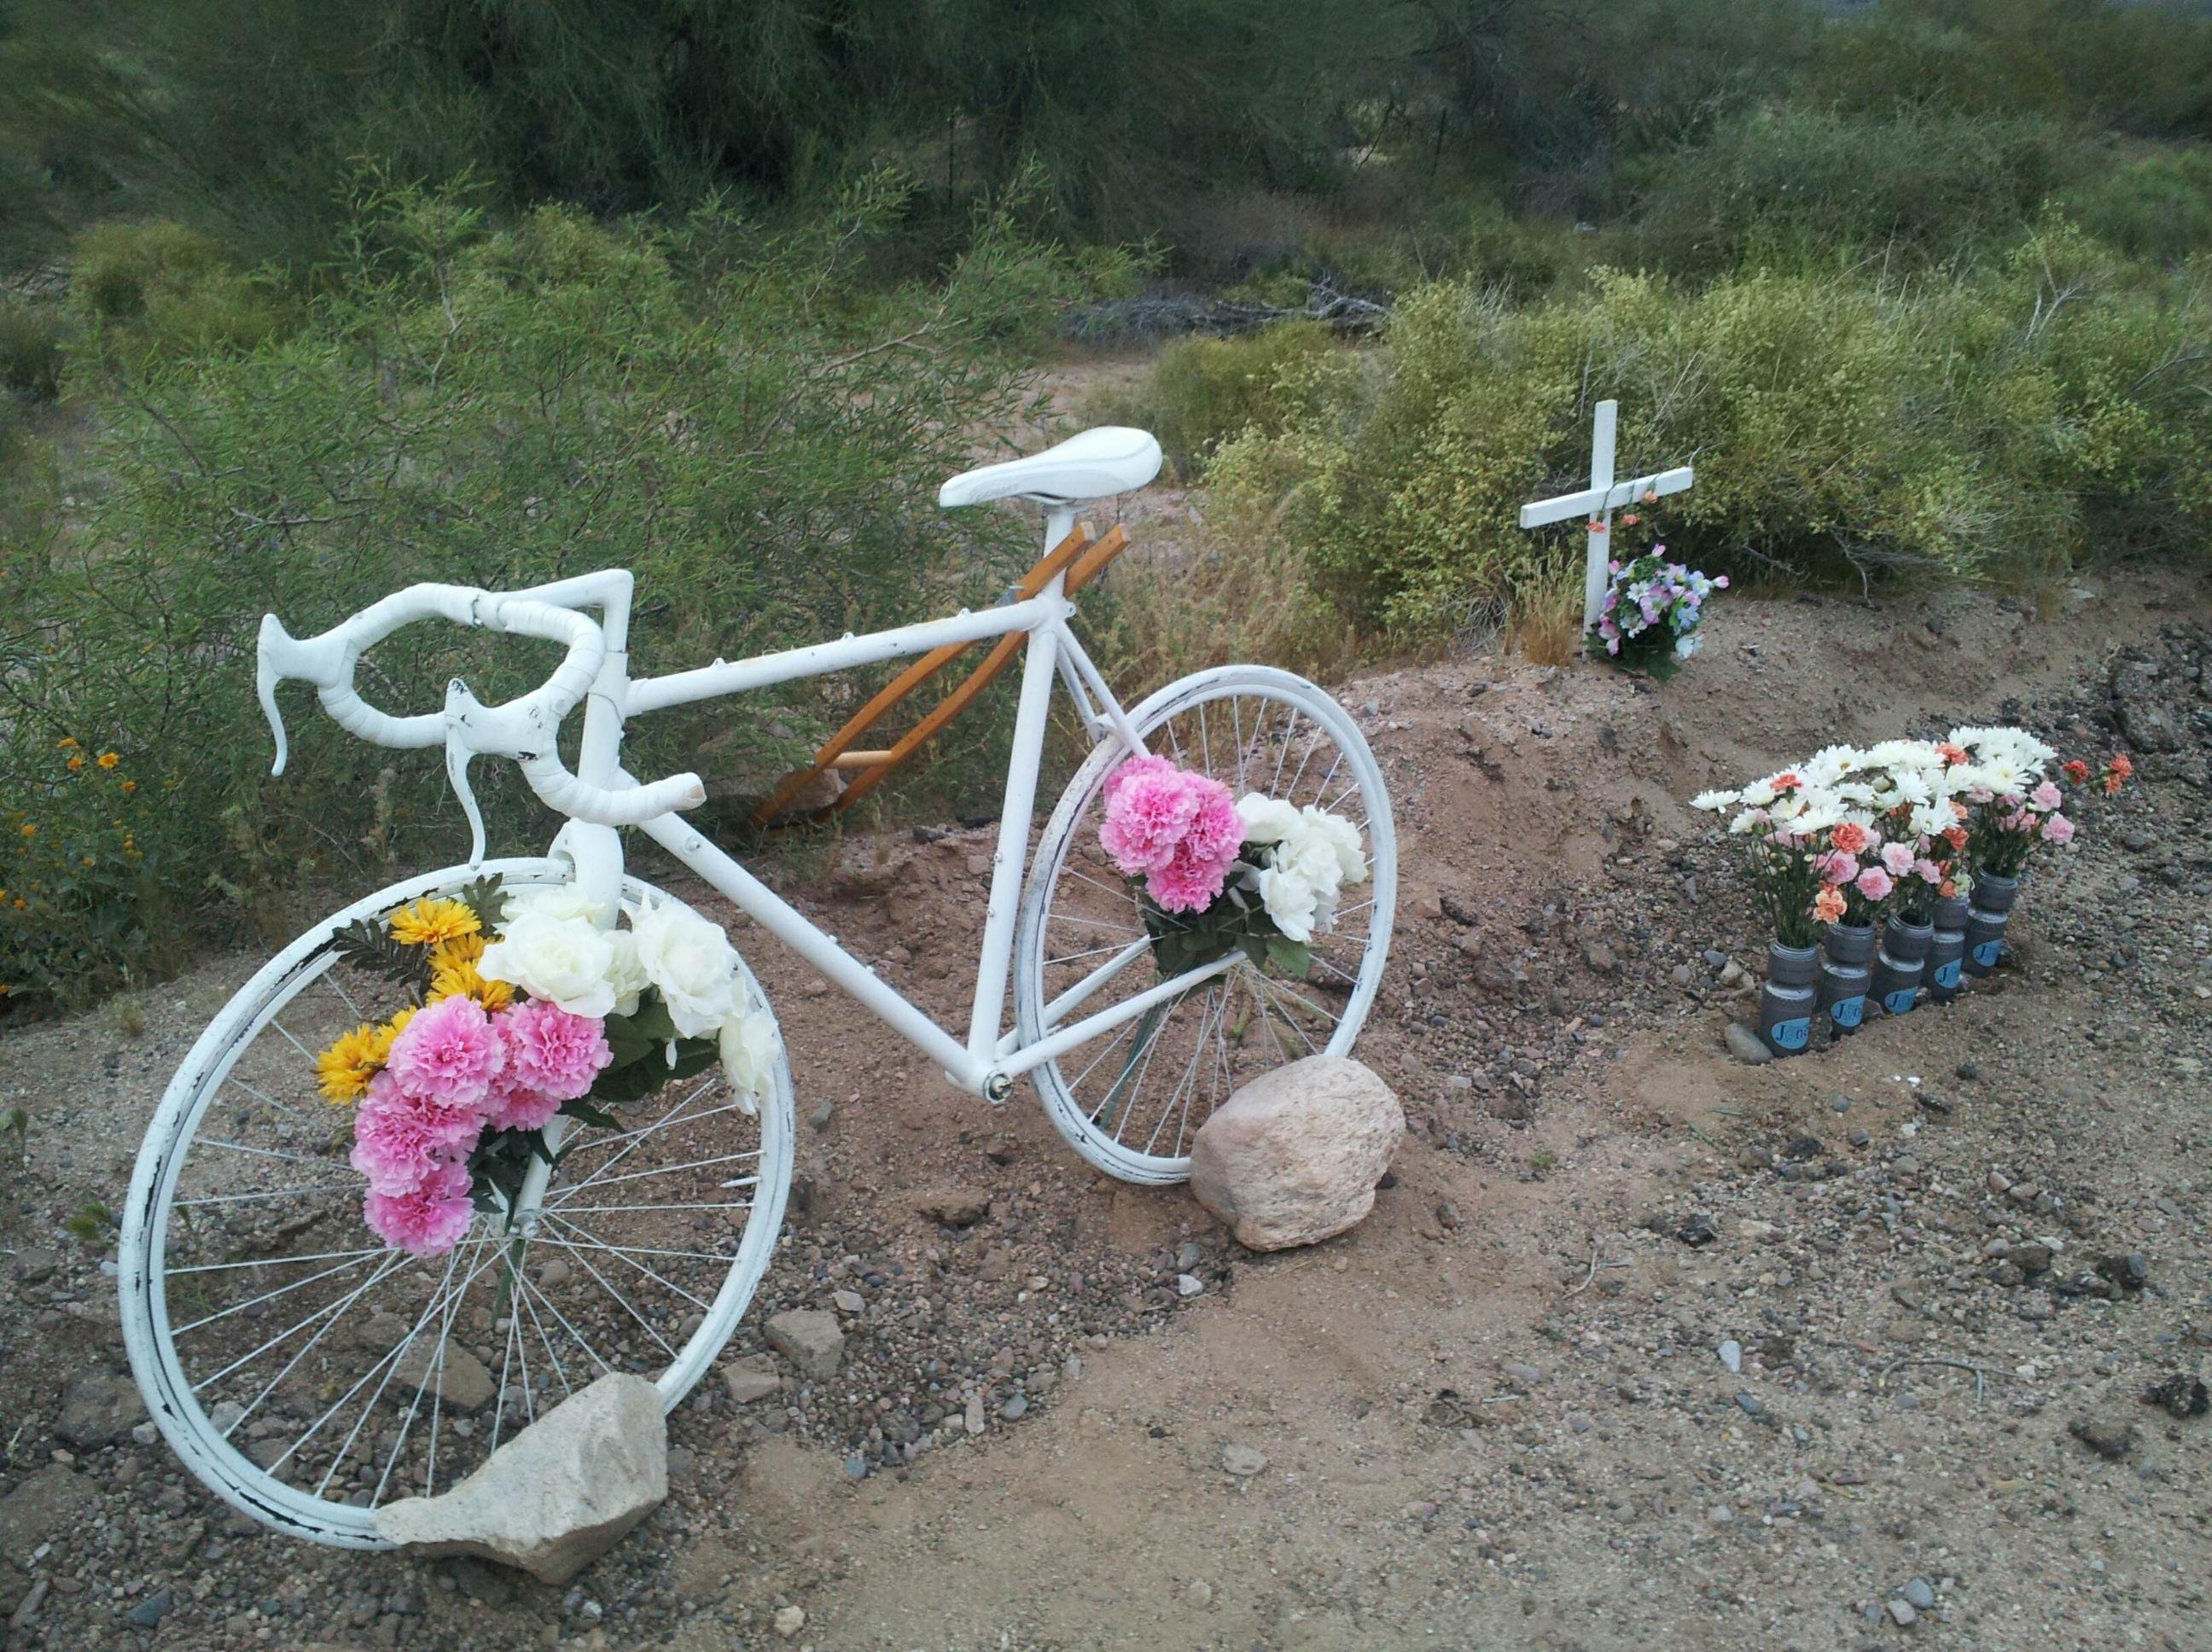 The Not One More Foundation, which helps families of killed and injured bicyclists, has also set up a memorial. (Source: CBS 5 News)